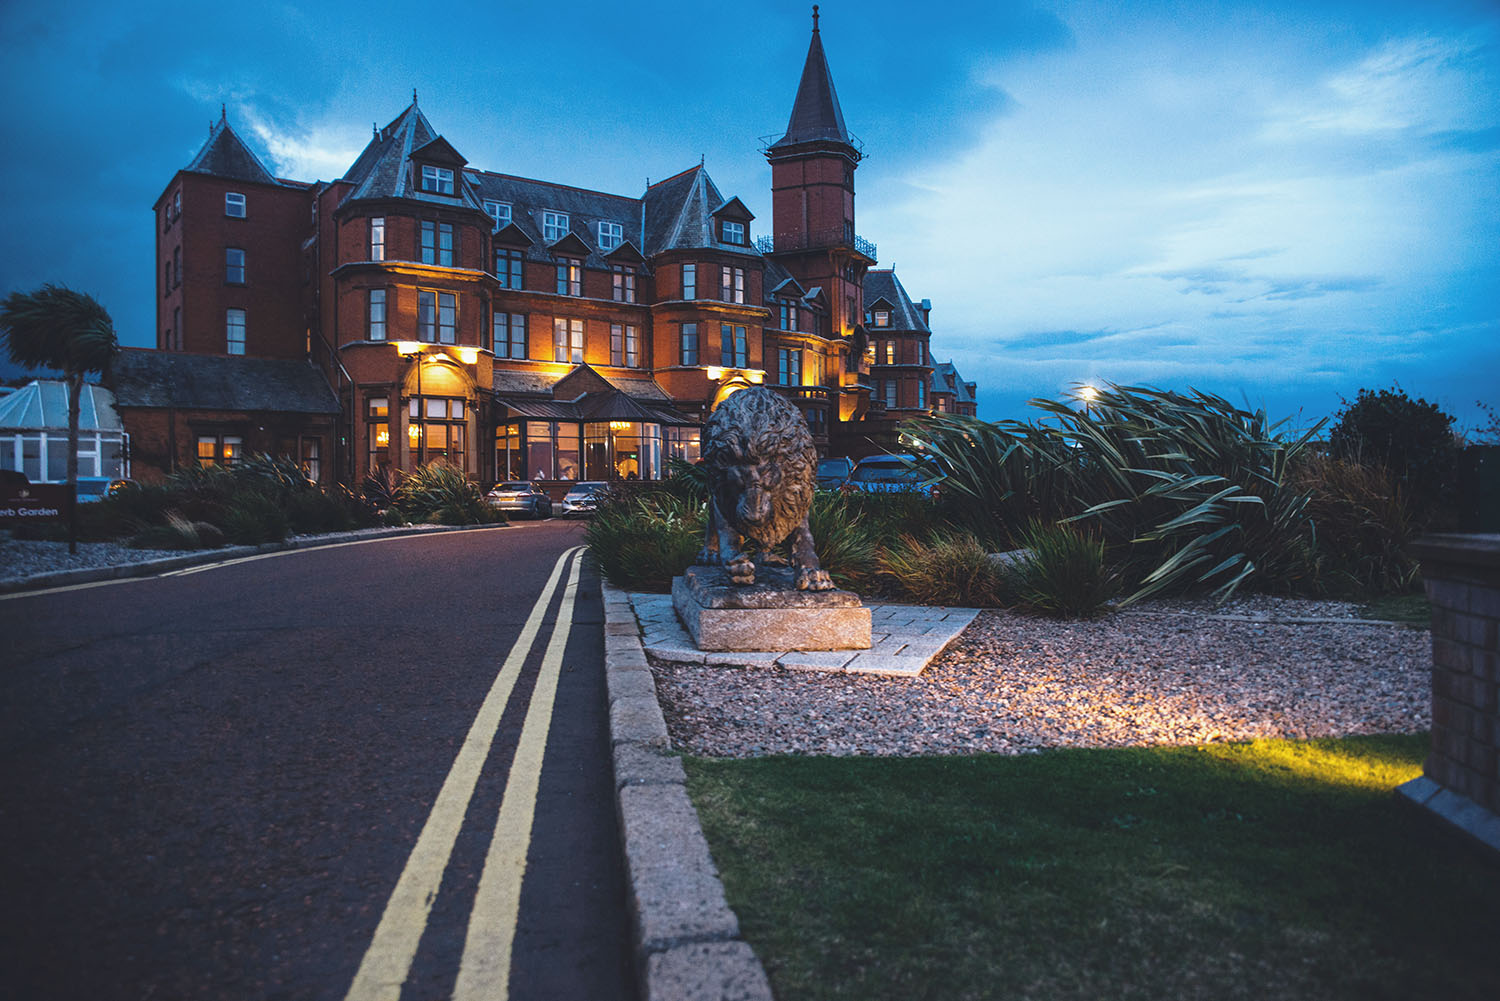 Slieve Donard Hotel Newcastle, Northern Ireland